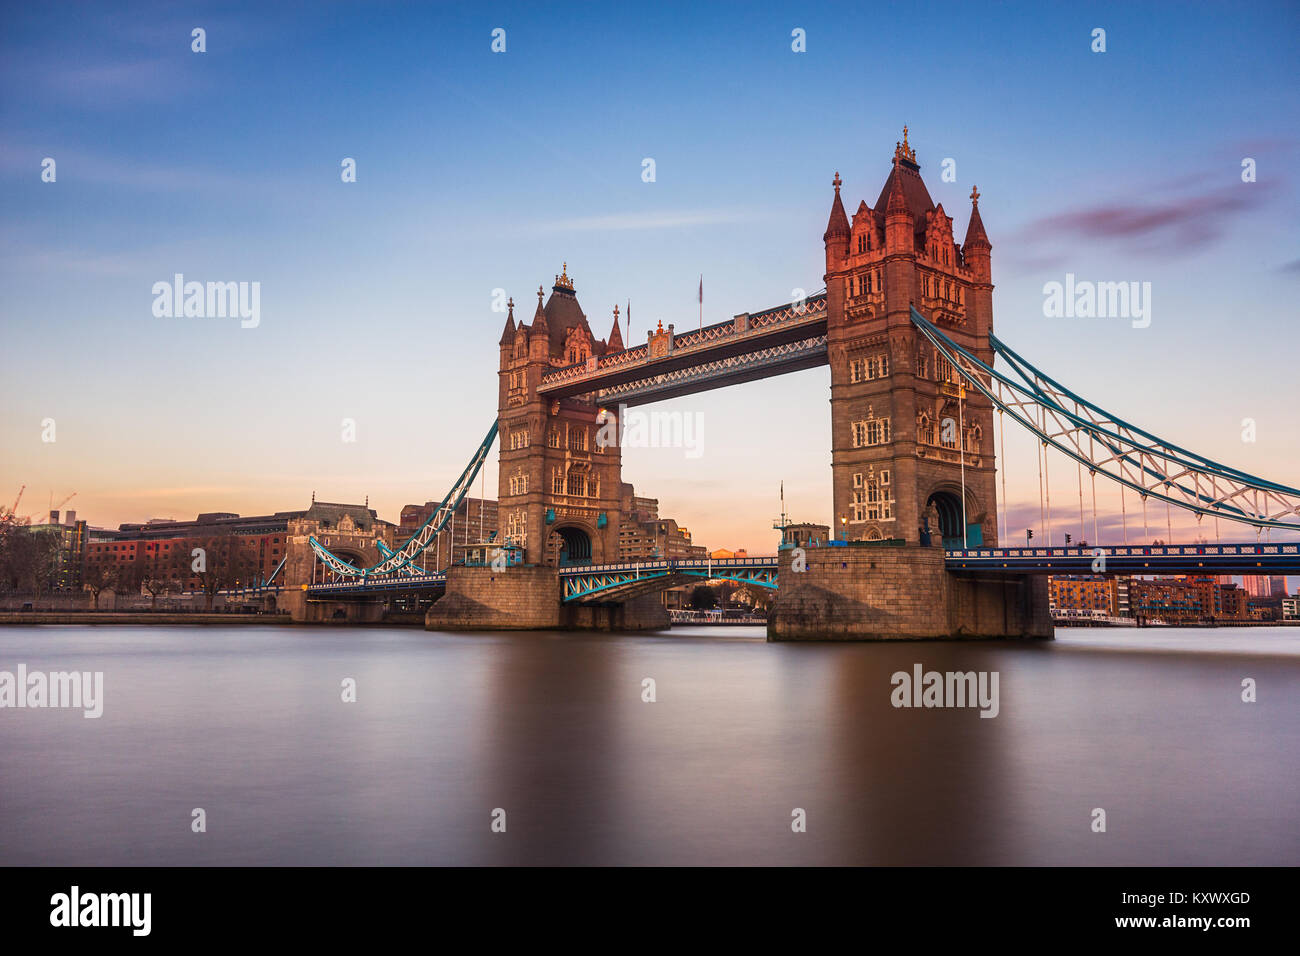 Last sunlight on Tower Bridge, London, UK - Stock Image